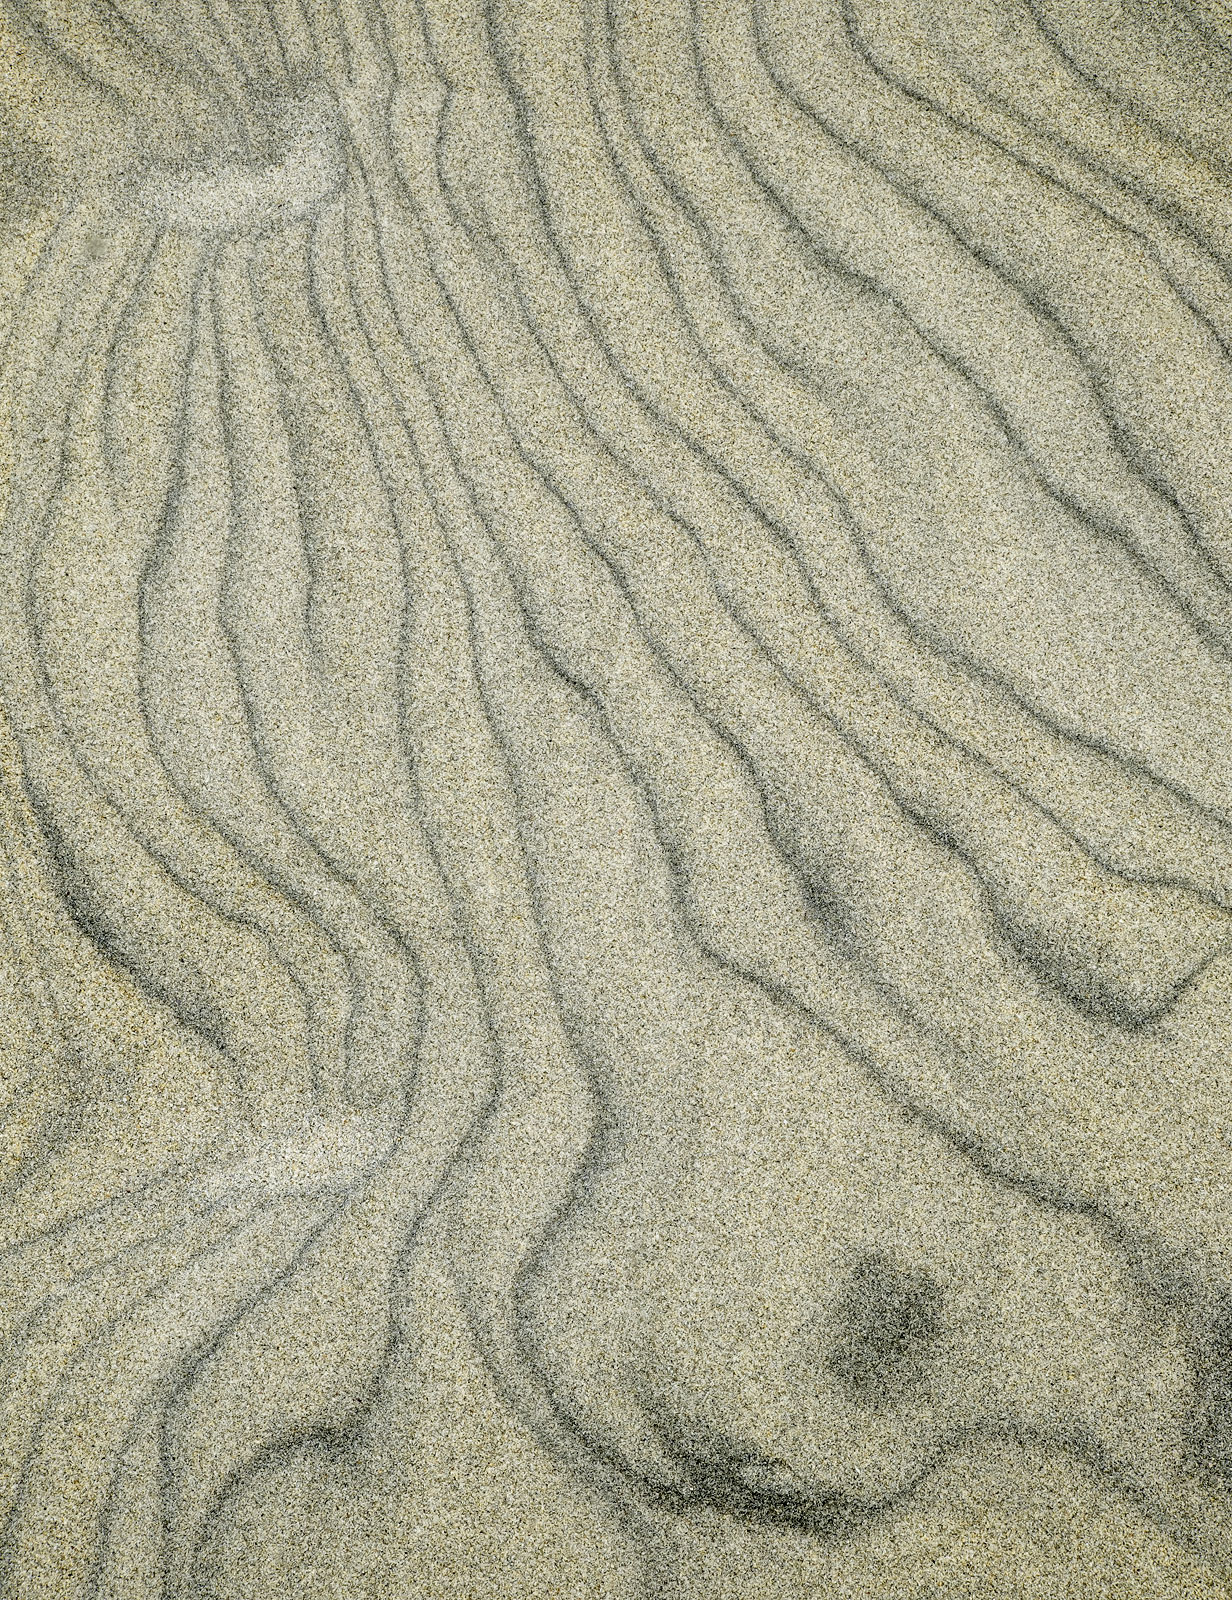 Sand Grain 1, Seilebost, Harris, Scotland, beach, vast, dunes, colossal, expansive, views, details, embedded, stained, photo